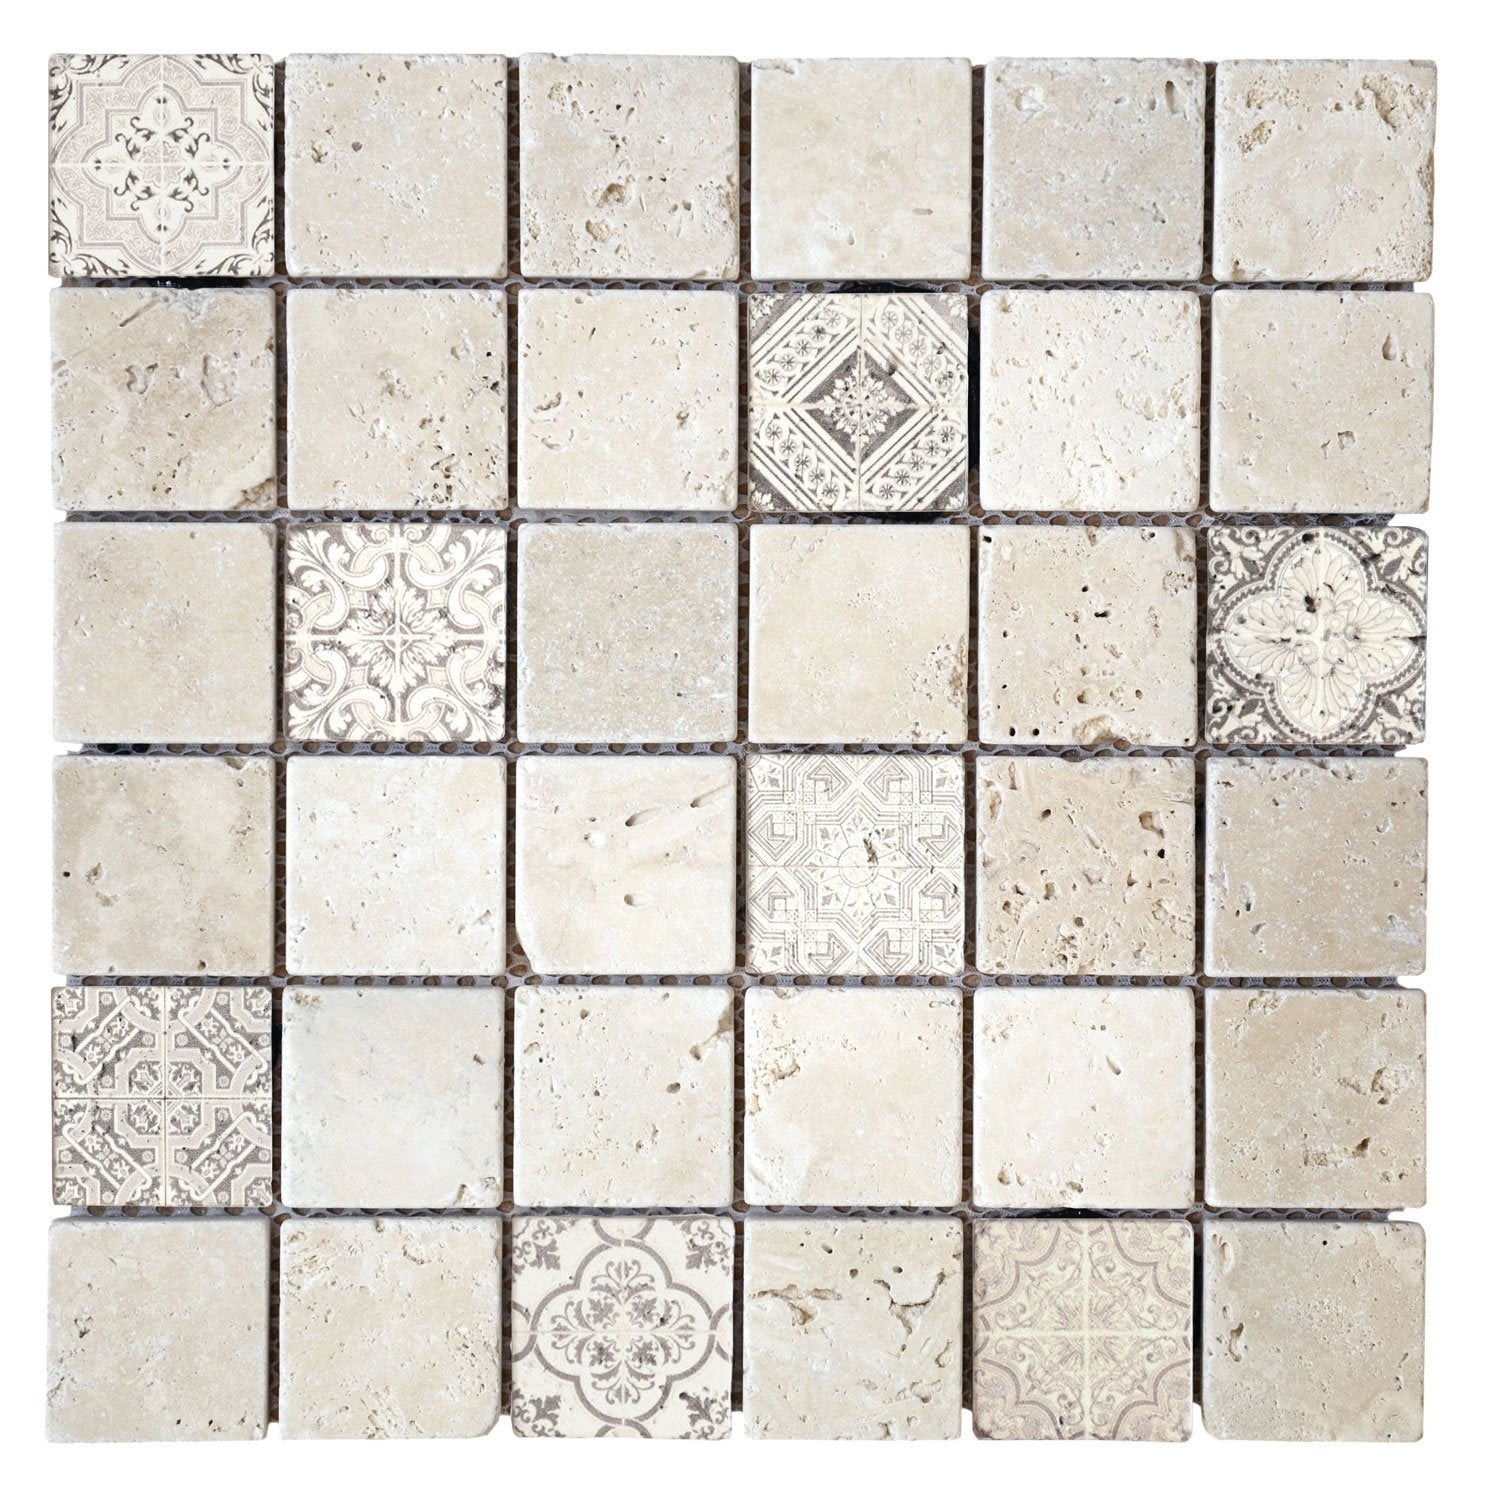 Mosa que mur renaissance travertin beige naturel 4 8 x 4 8 cm leroy merlin for Mosaique travertin leroy merlin